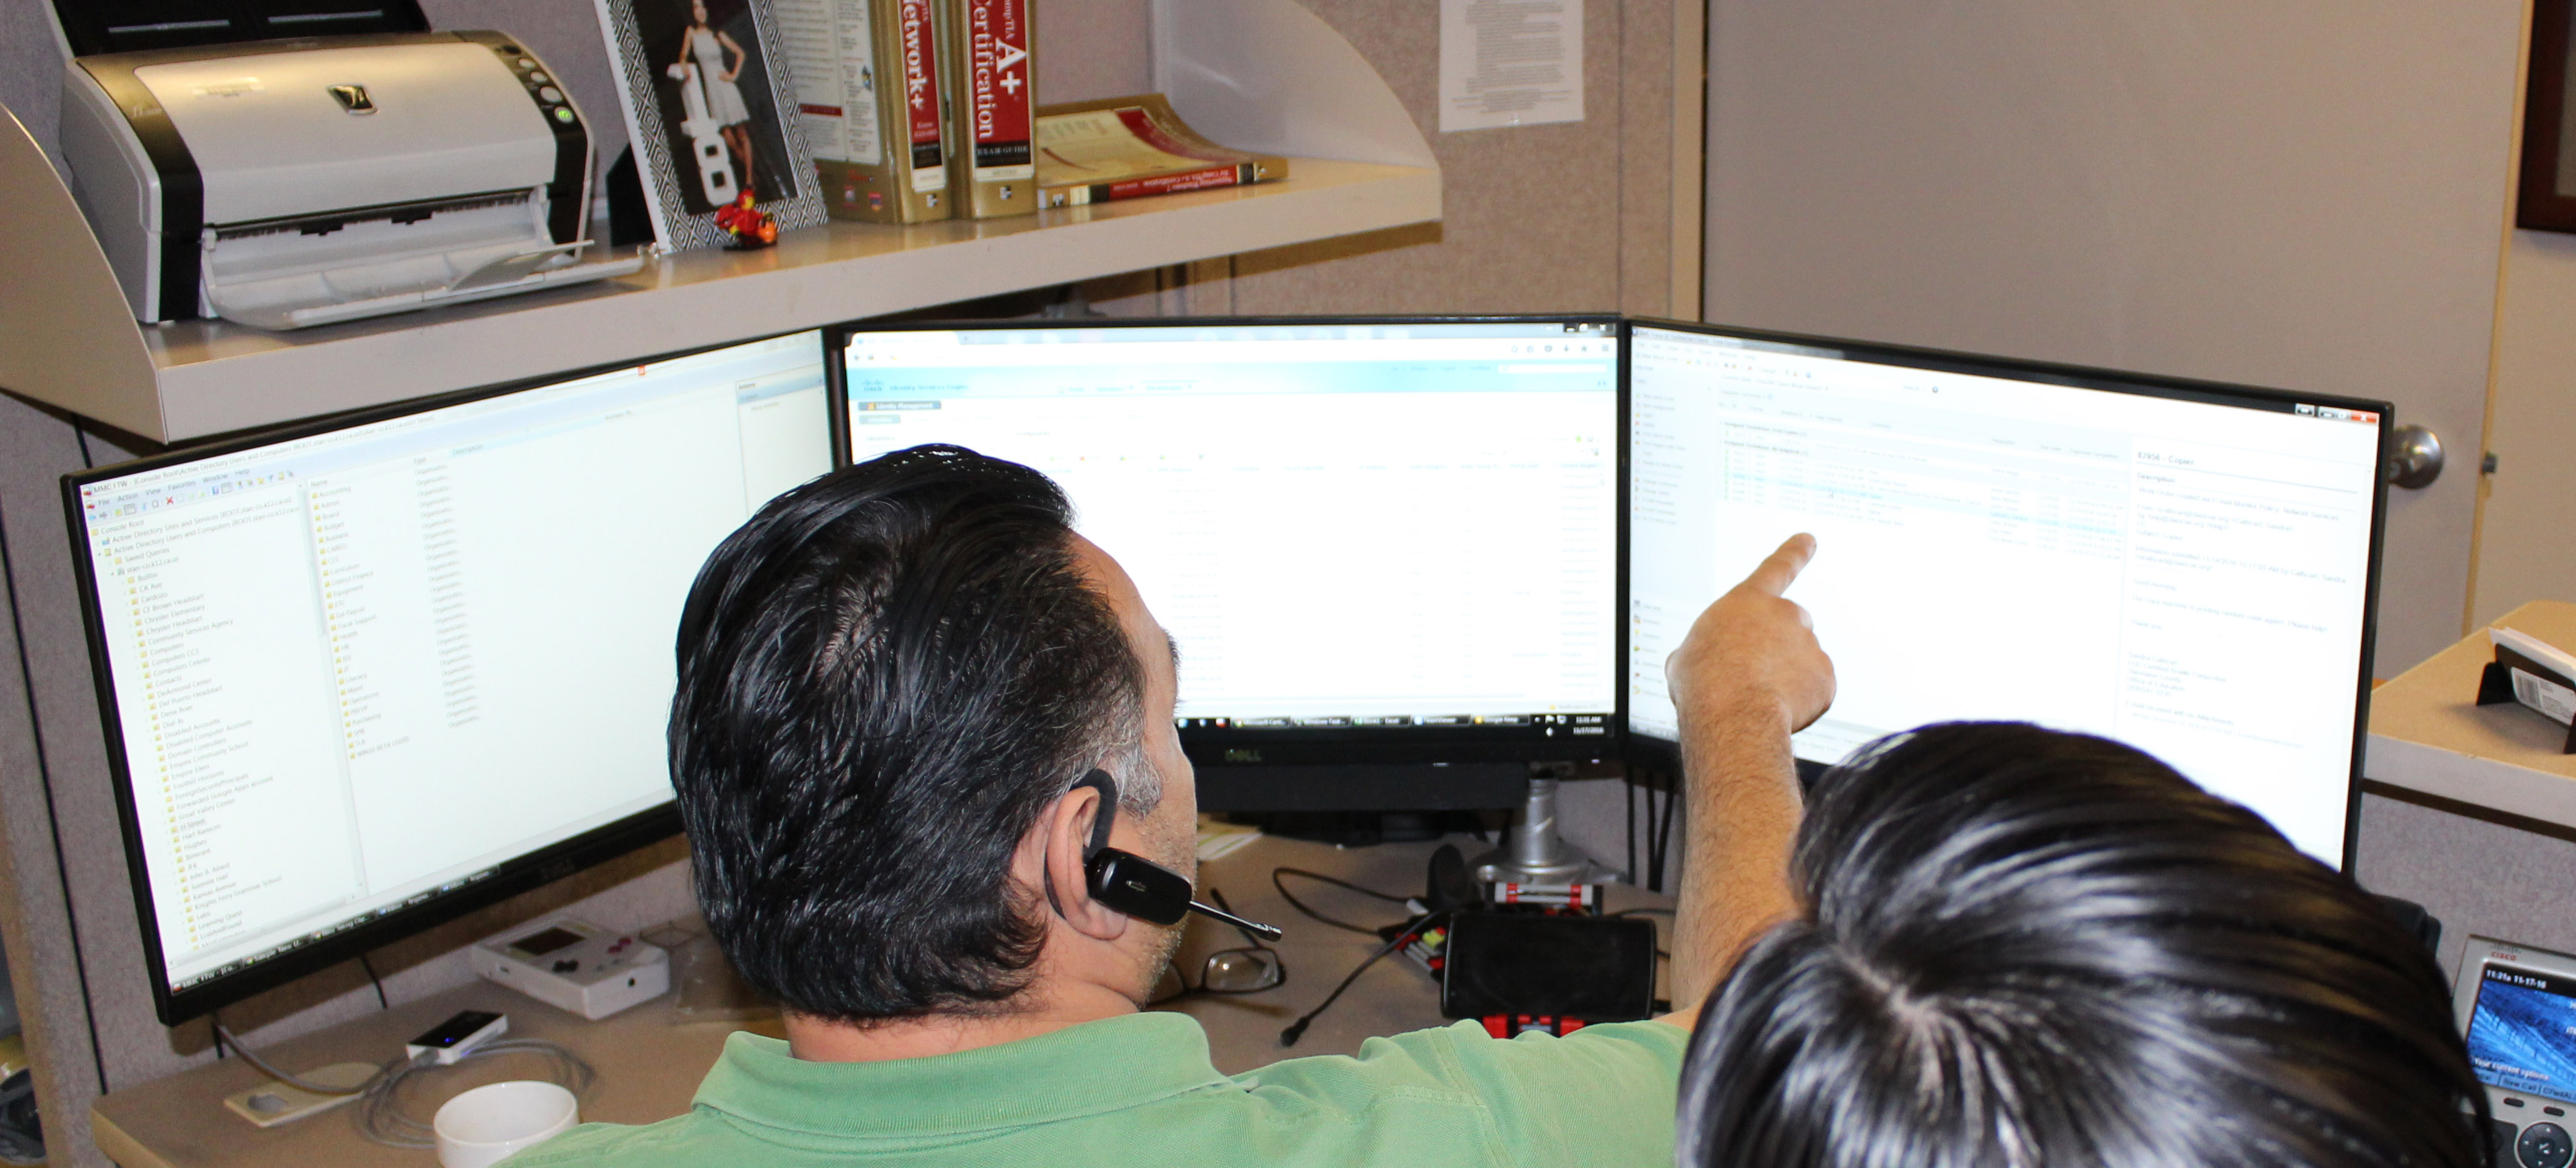 help desk employees pointing at a screen